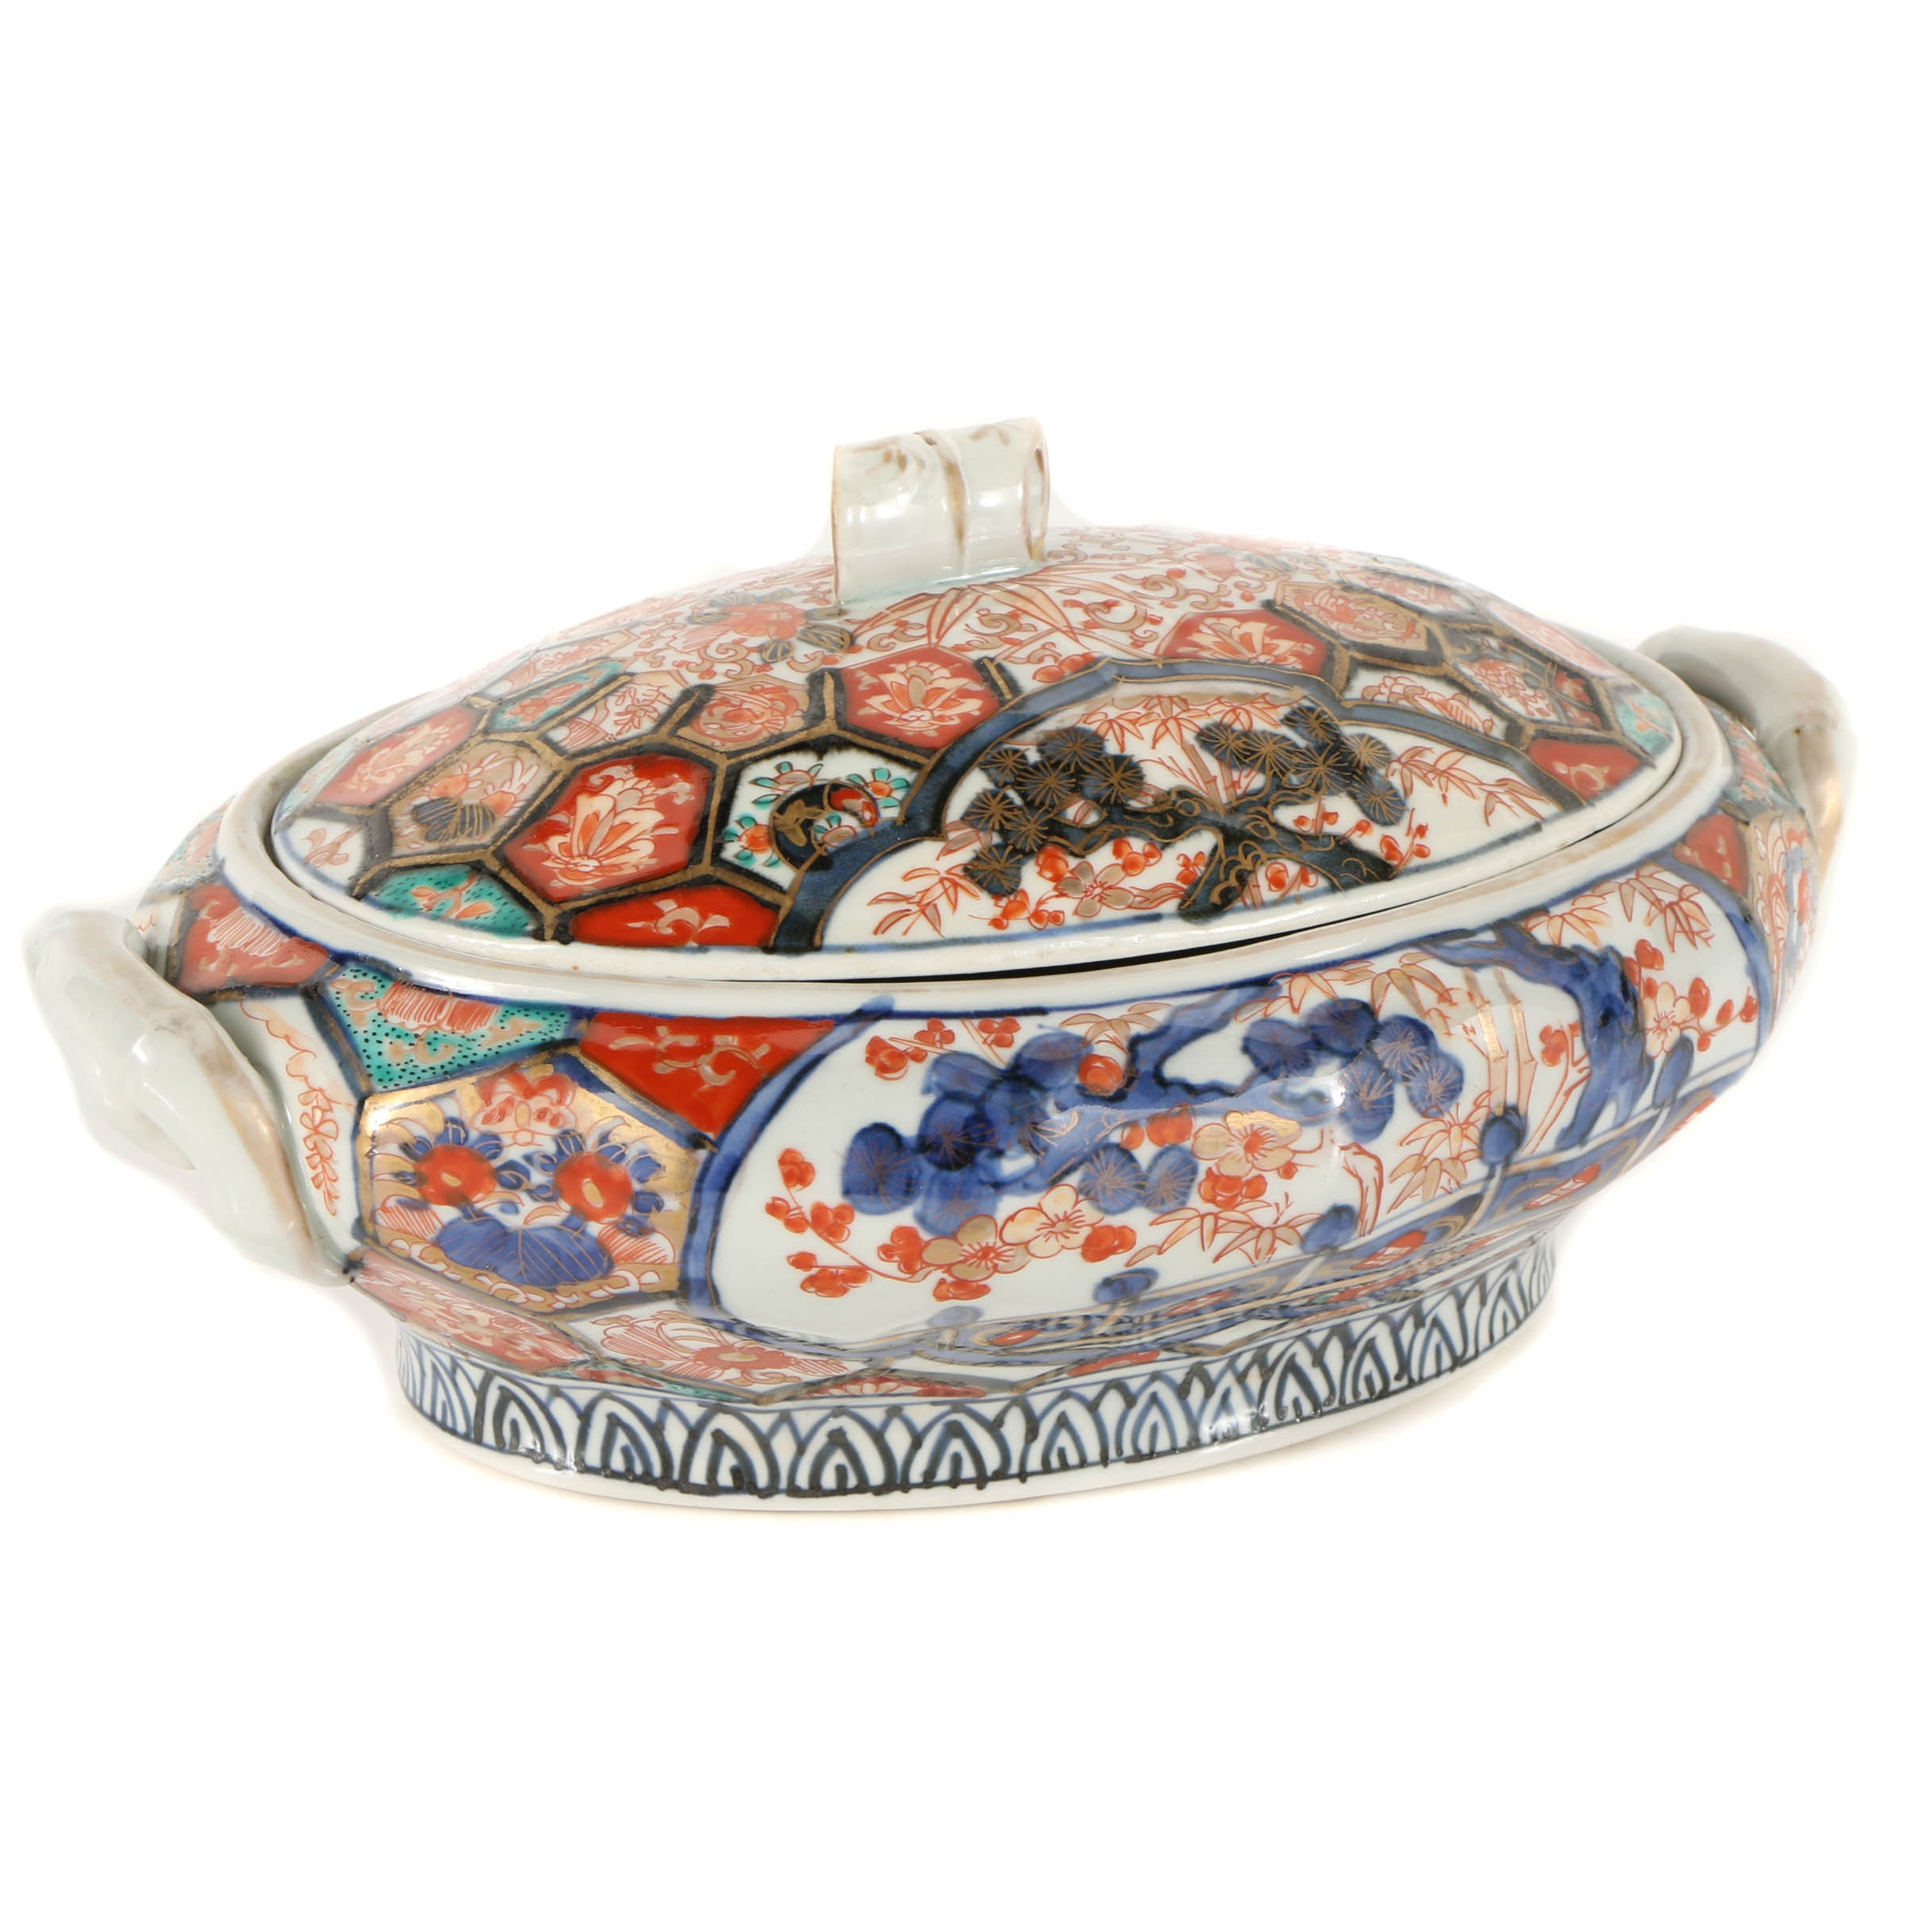 Japanese Lidded Porcelain Bowl with Floral and Bamboo Motif